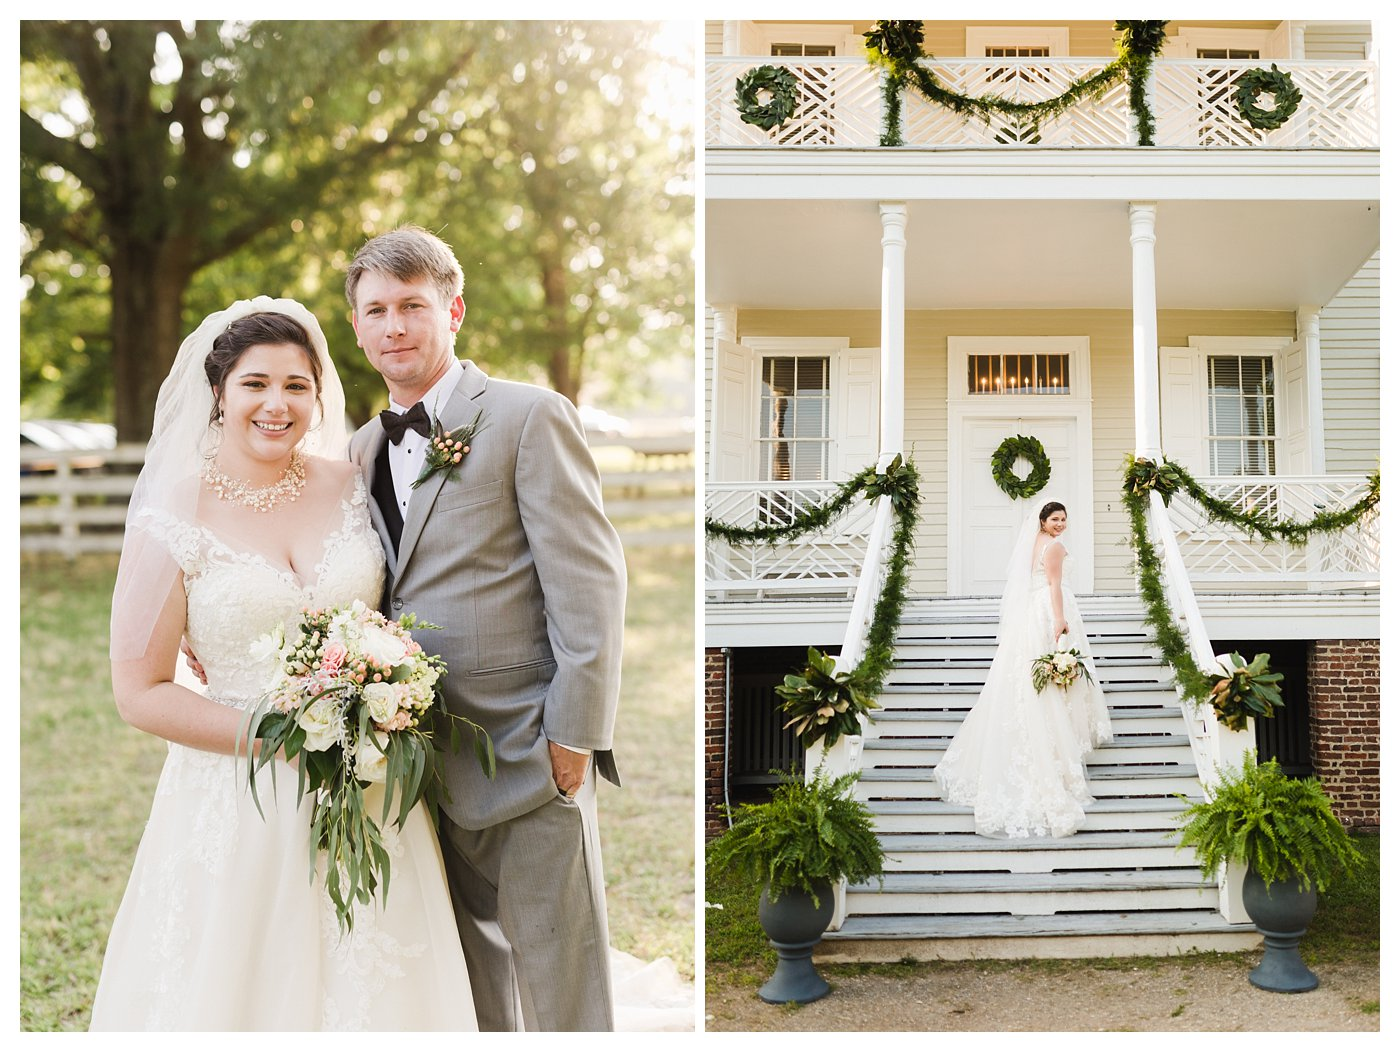 Historic_Hope_Plantation_Wedding_Photography_Sage_Summer_Outdoor_Windsor_NC_0040.jpg